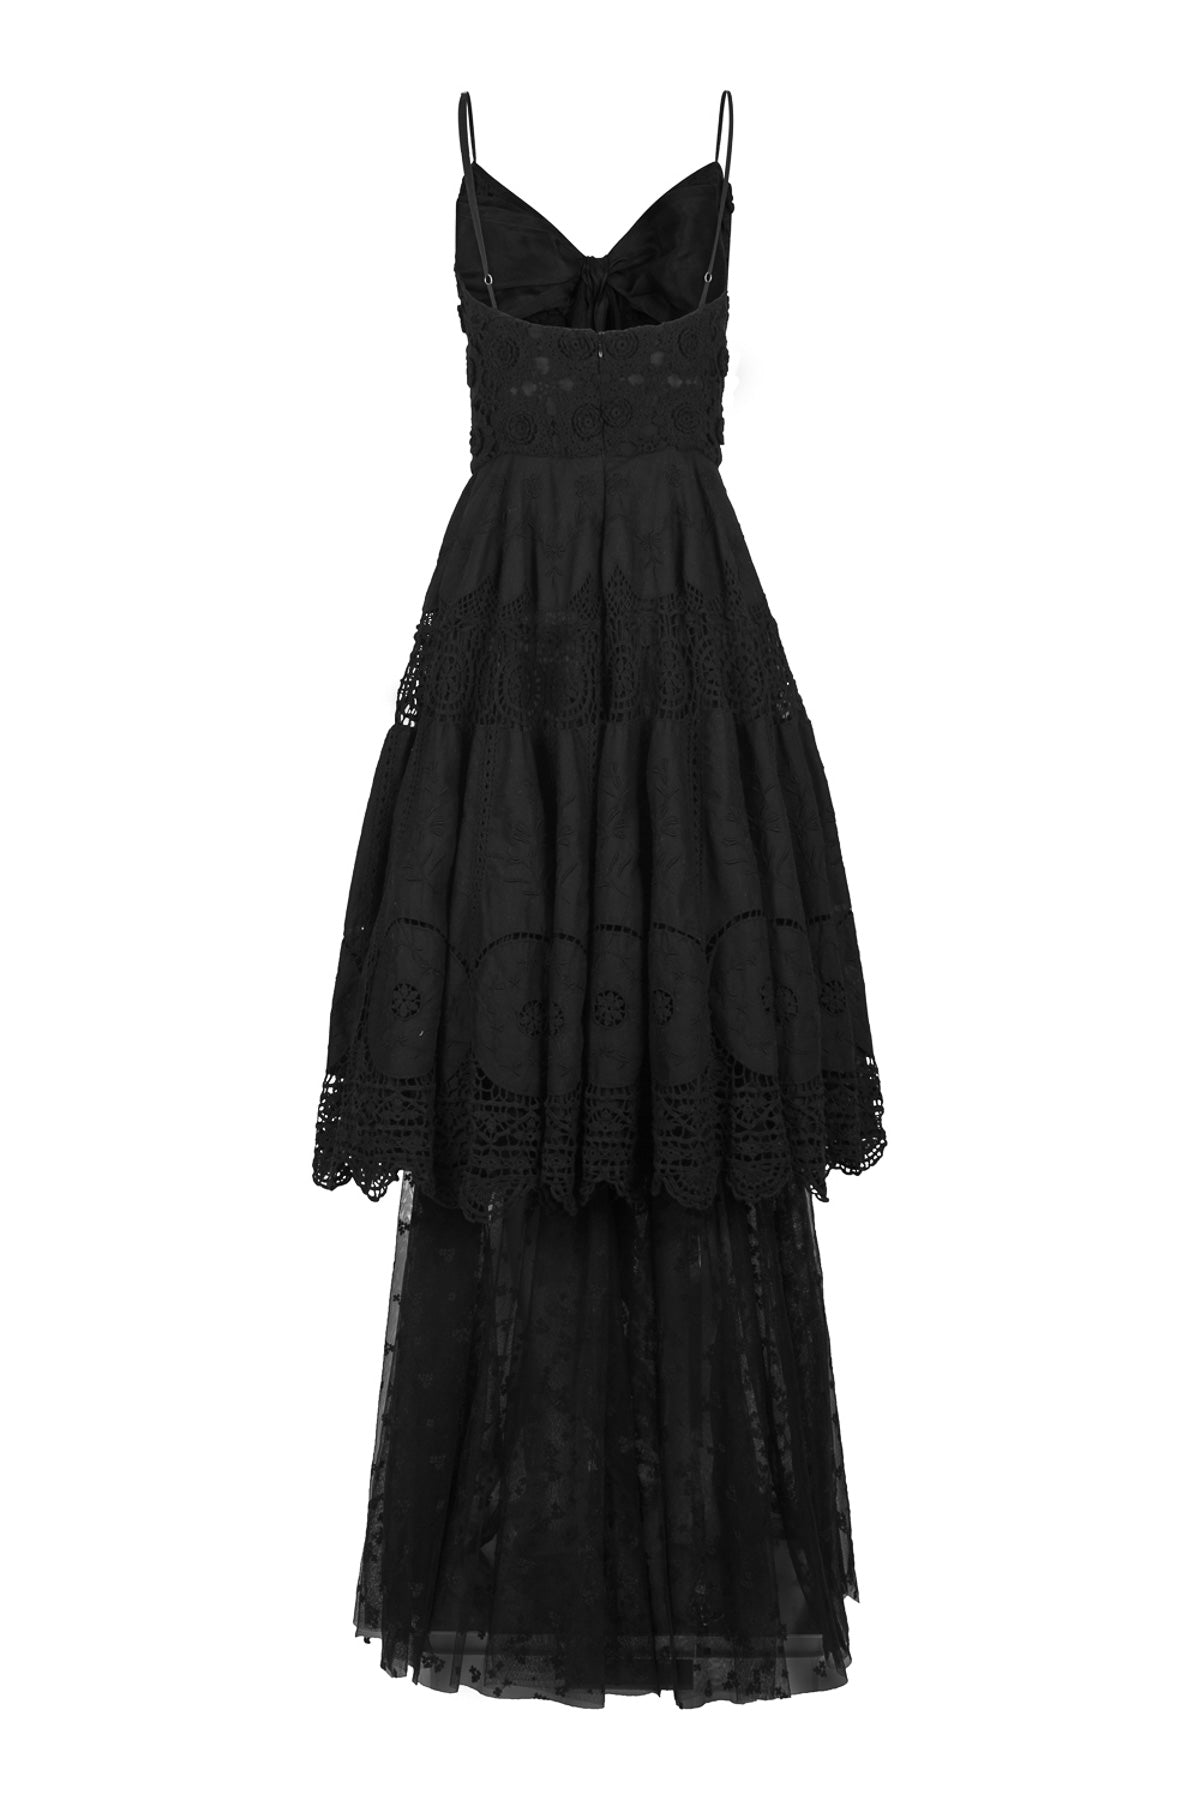 rose noir dress